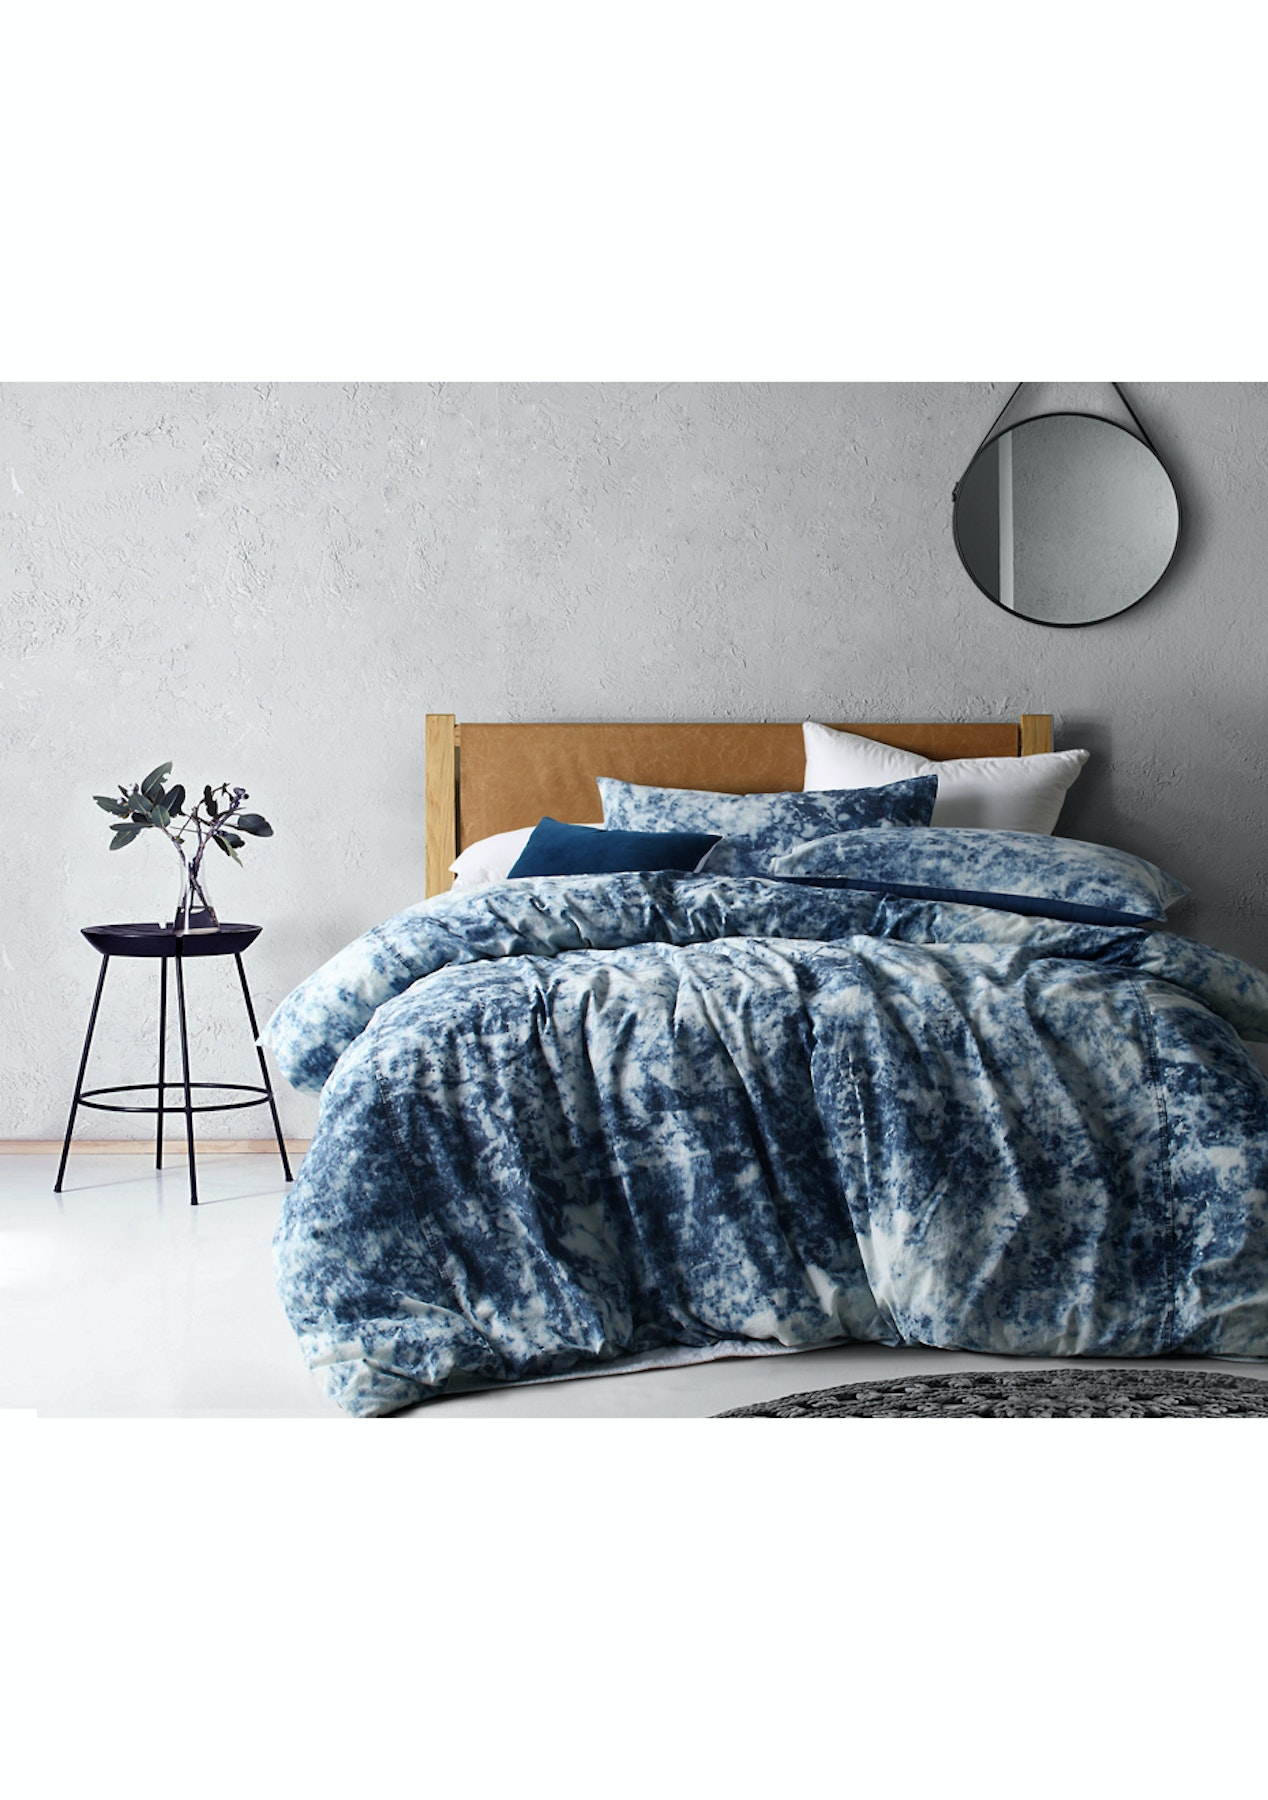 White Acid Wash Denim Linen Cotton Quilt Cover Set